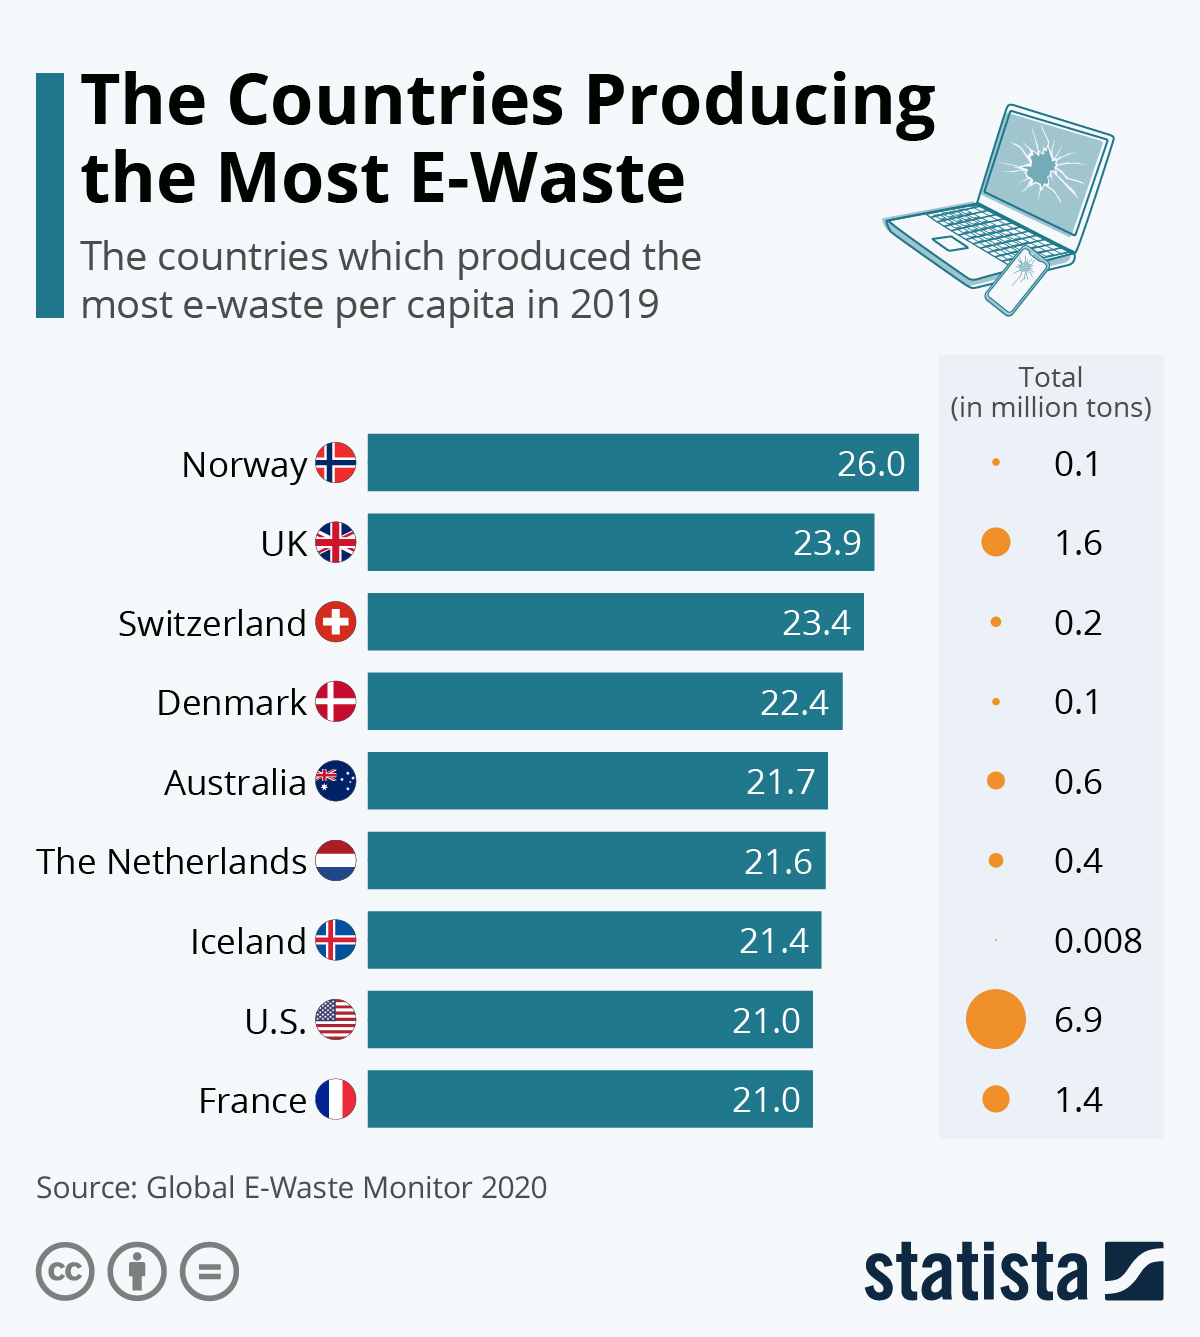 Which country is producing the most E-waste?